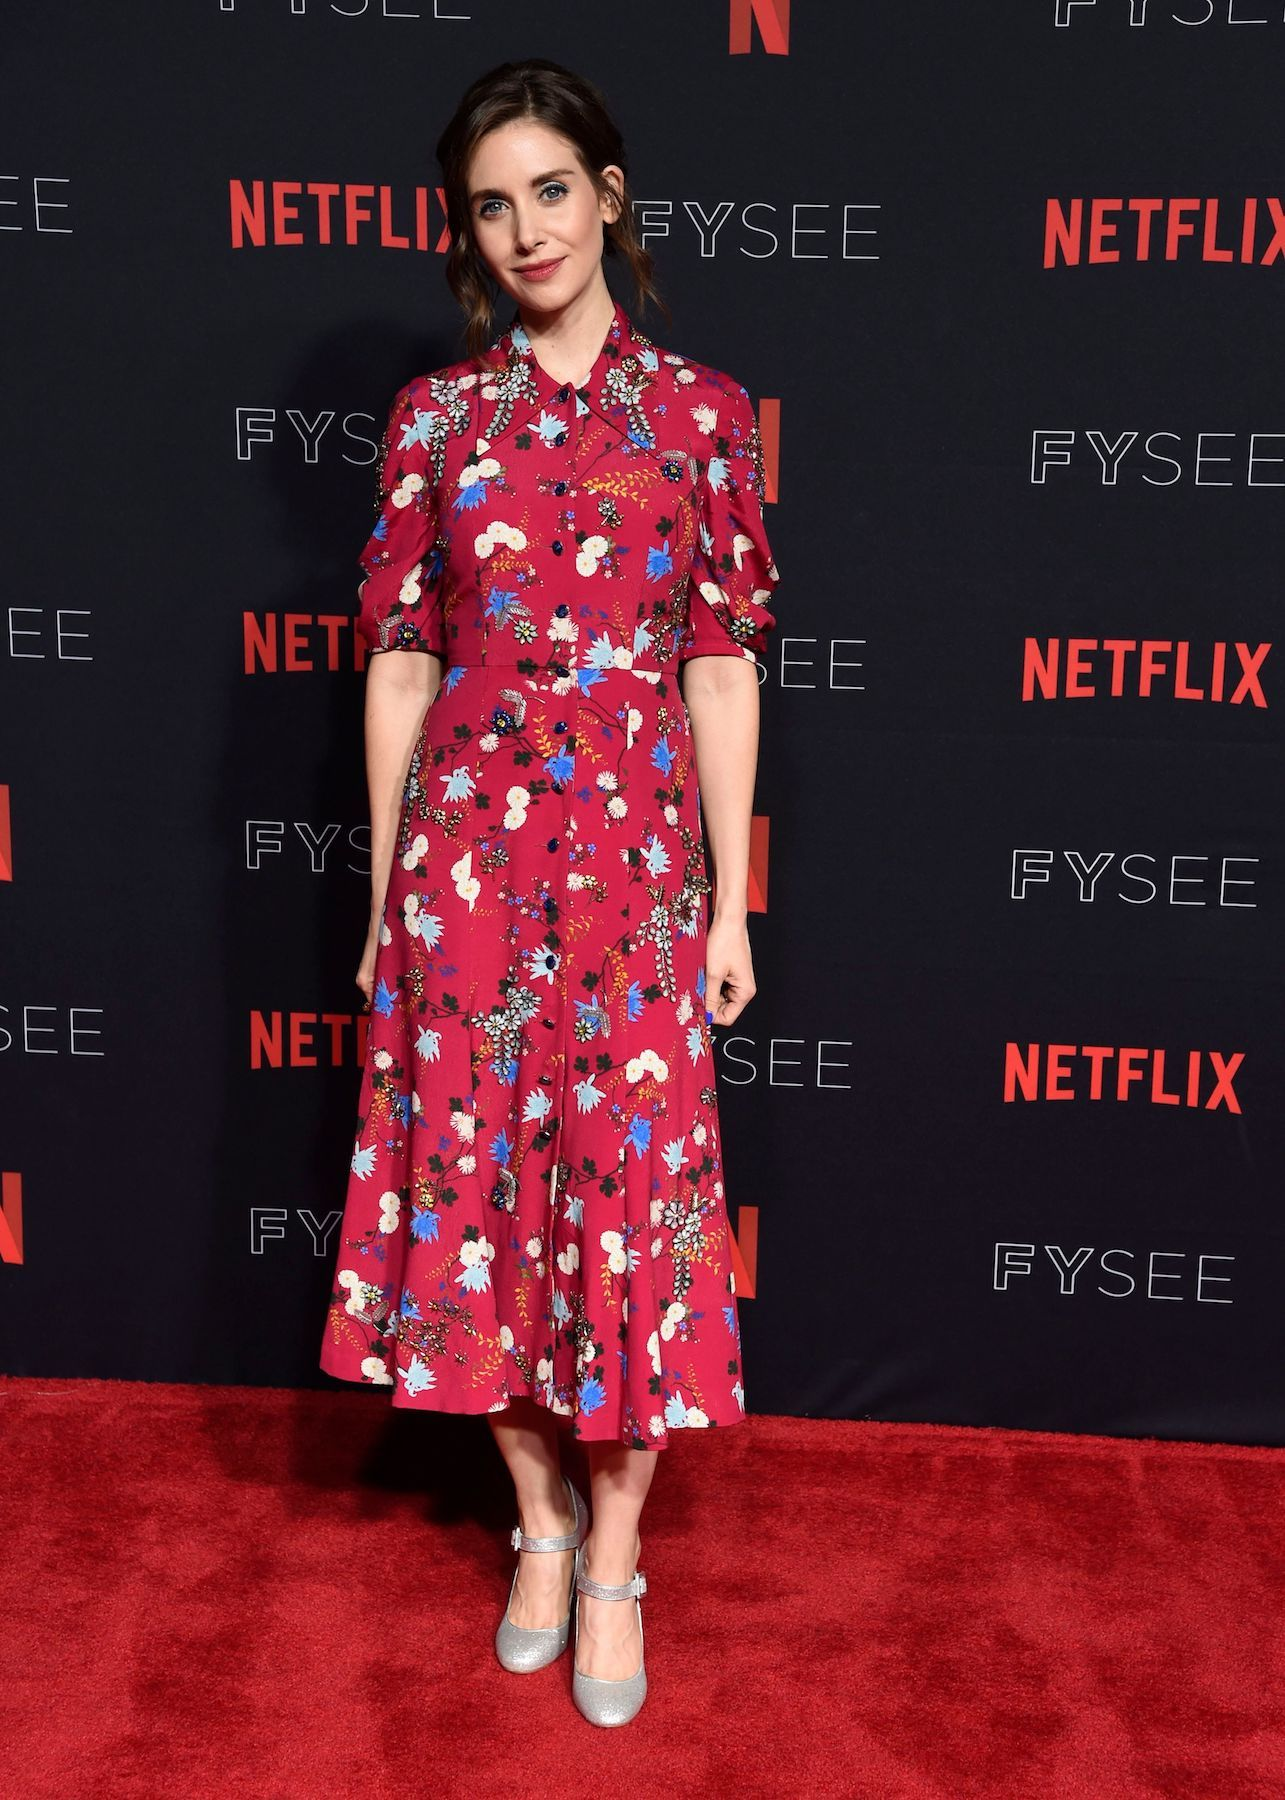 Alison Brie In Erdem Netflixfysee For Your Consideration Event Glow Red Carpet Fashion Alison Brie Celebrity Red Carpet